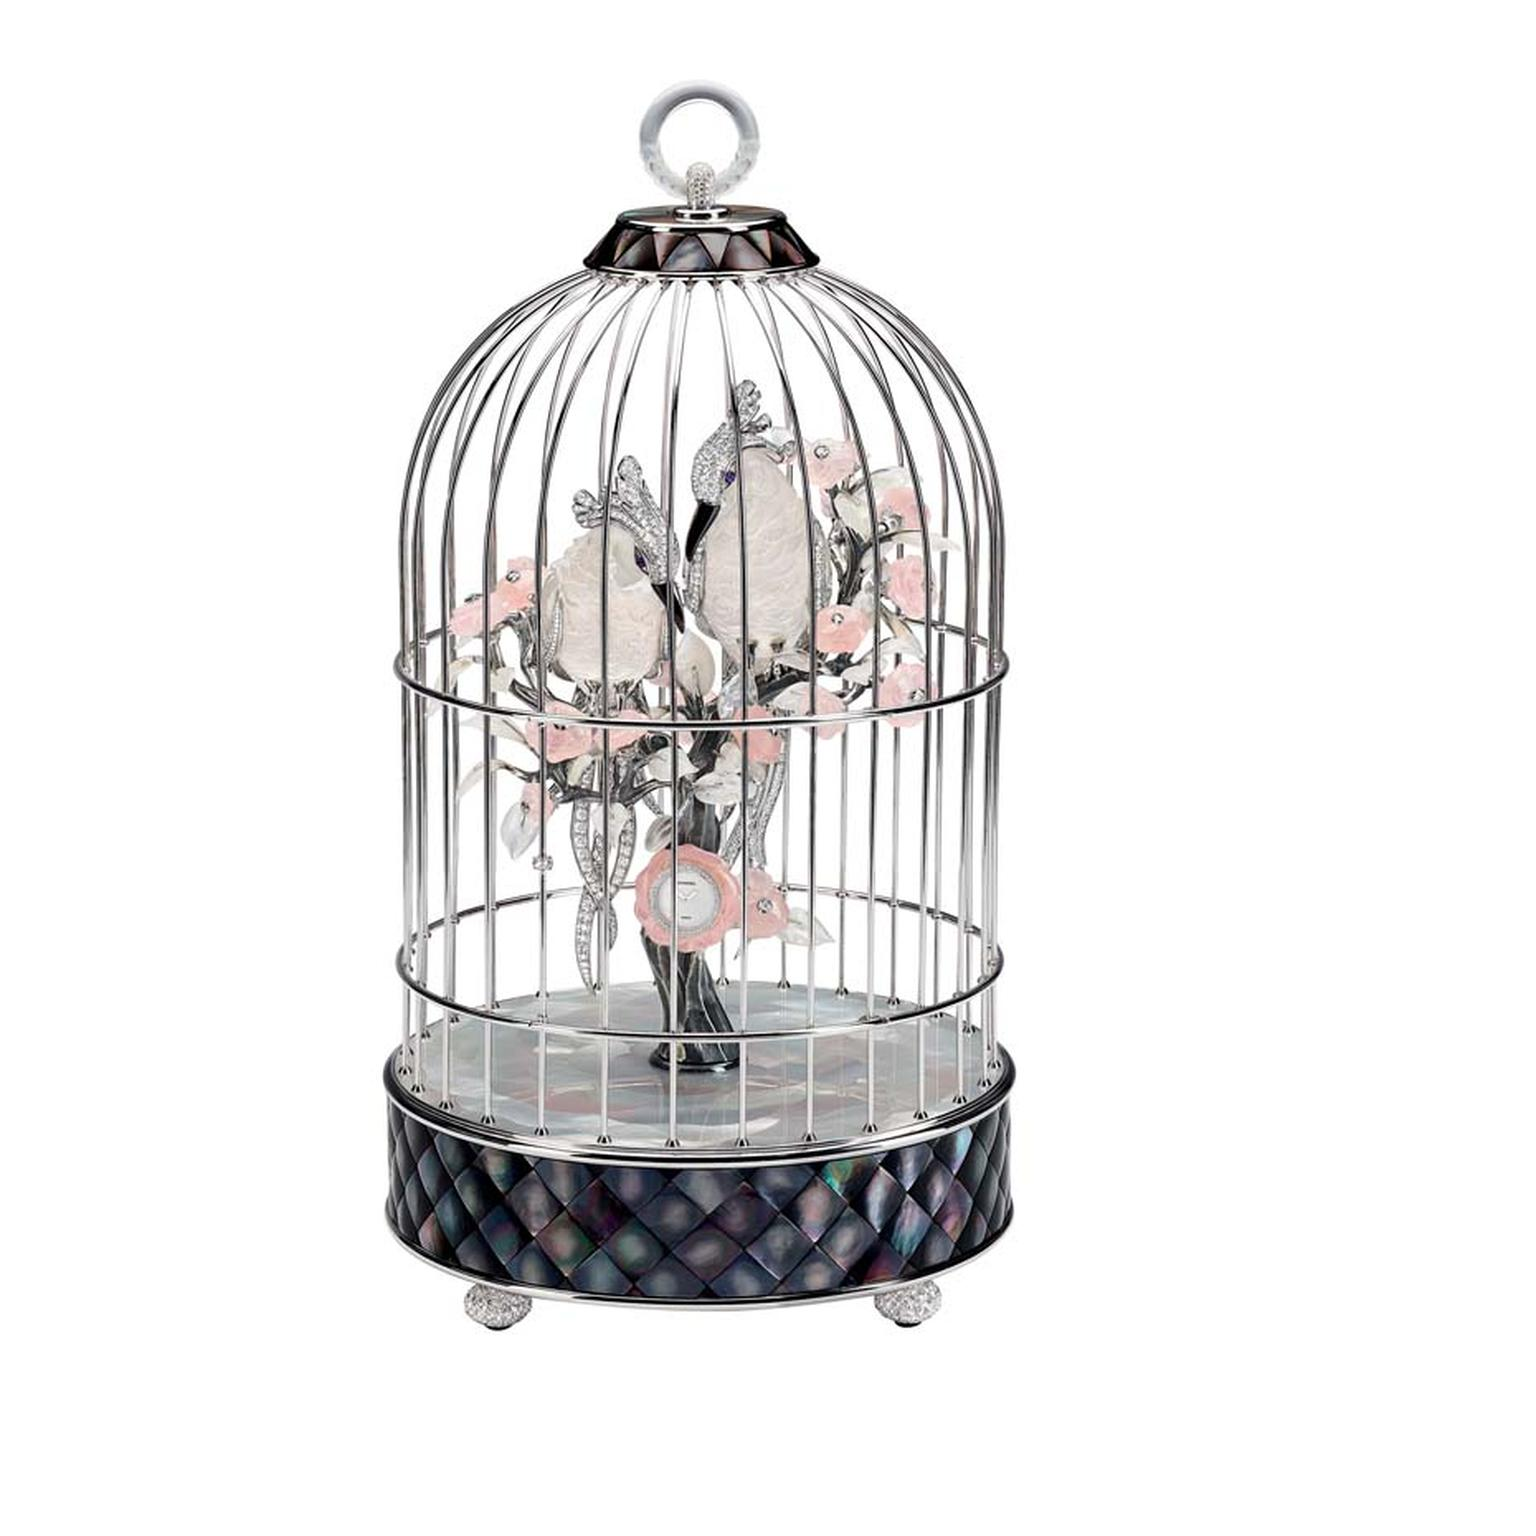 Chanel's white gold Birdcage clock featuring two cockatoos entwined amongst pink camelias features 61.5ct of brilliant-cut diamonds, sculpted moonstone, sculpted pink quartz, rock crystal and gray and white mother-of-pearl.